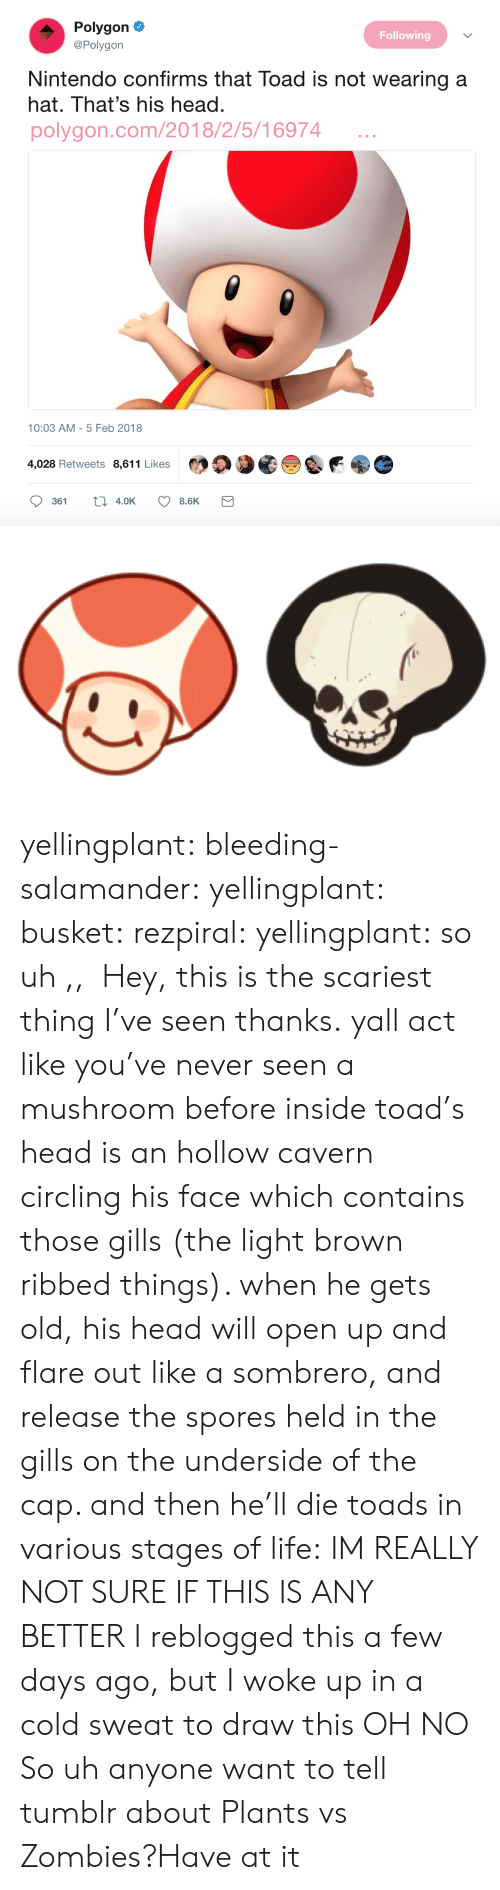 circling: Polygon  Following  @Polygon  Nintendo confirms that Toad is not wearing a  hat. That's his head.  polygon.com/2018/2/5/16974  10:03 AM - 5 Feb 2018  4,028 Retweets 8,611 Likes yellingplant:  bleeding-salamander:  yellingplant:  busket:  rezpiral:  yellingplant:  so uh ,,  Hey, this is the scariest thing I've seen thanks.  yall act like you've never seen a mushroom before inside toad's head is an hollow cavern circling his face which contains those gills (the light brown ribbed things). when he gets old, his head will open up and flare out like a sombrero, and release the spores held in the gills on the underside of the cap. and then he'll die toads in various stages of life:  IM REALLY NOT SURE IF THIS IS ANY BETTER  I reblogged this a few days ago, but I woke up in a cold sweat to draw this  OH NO  So uh anyone want to tell tumblr about Plants vs Zombies?Have at it